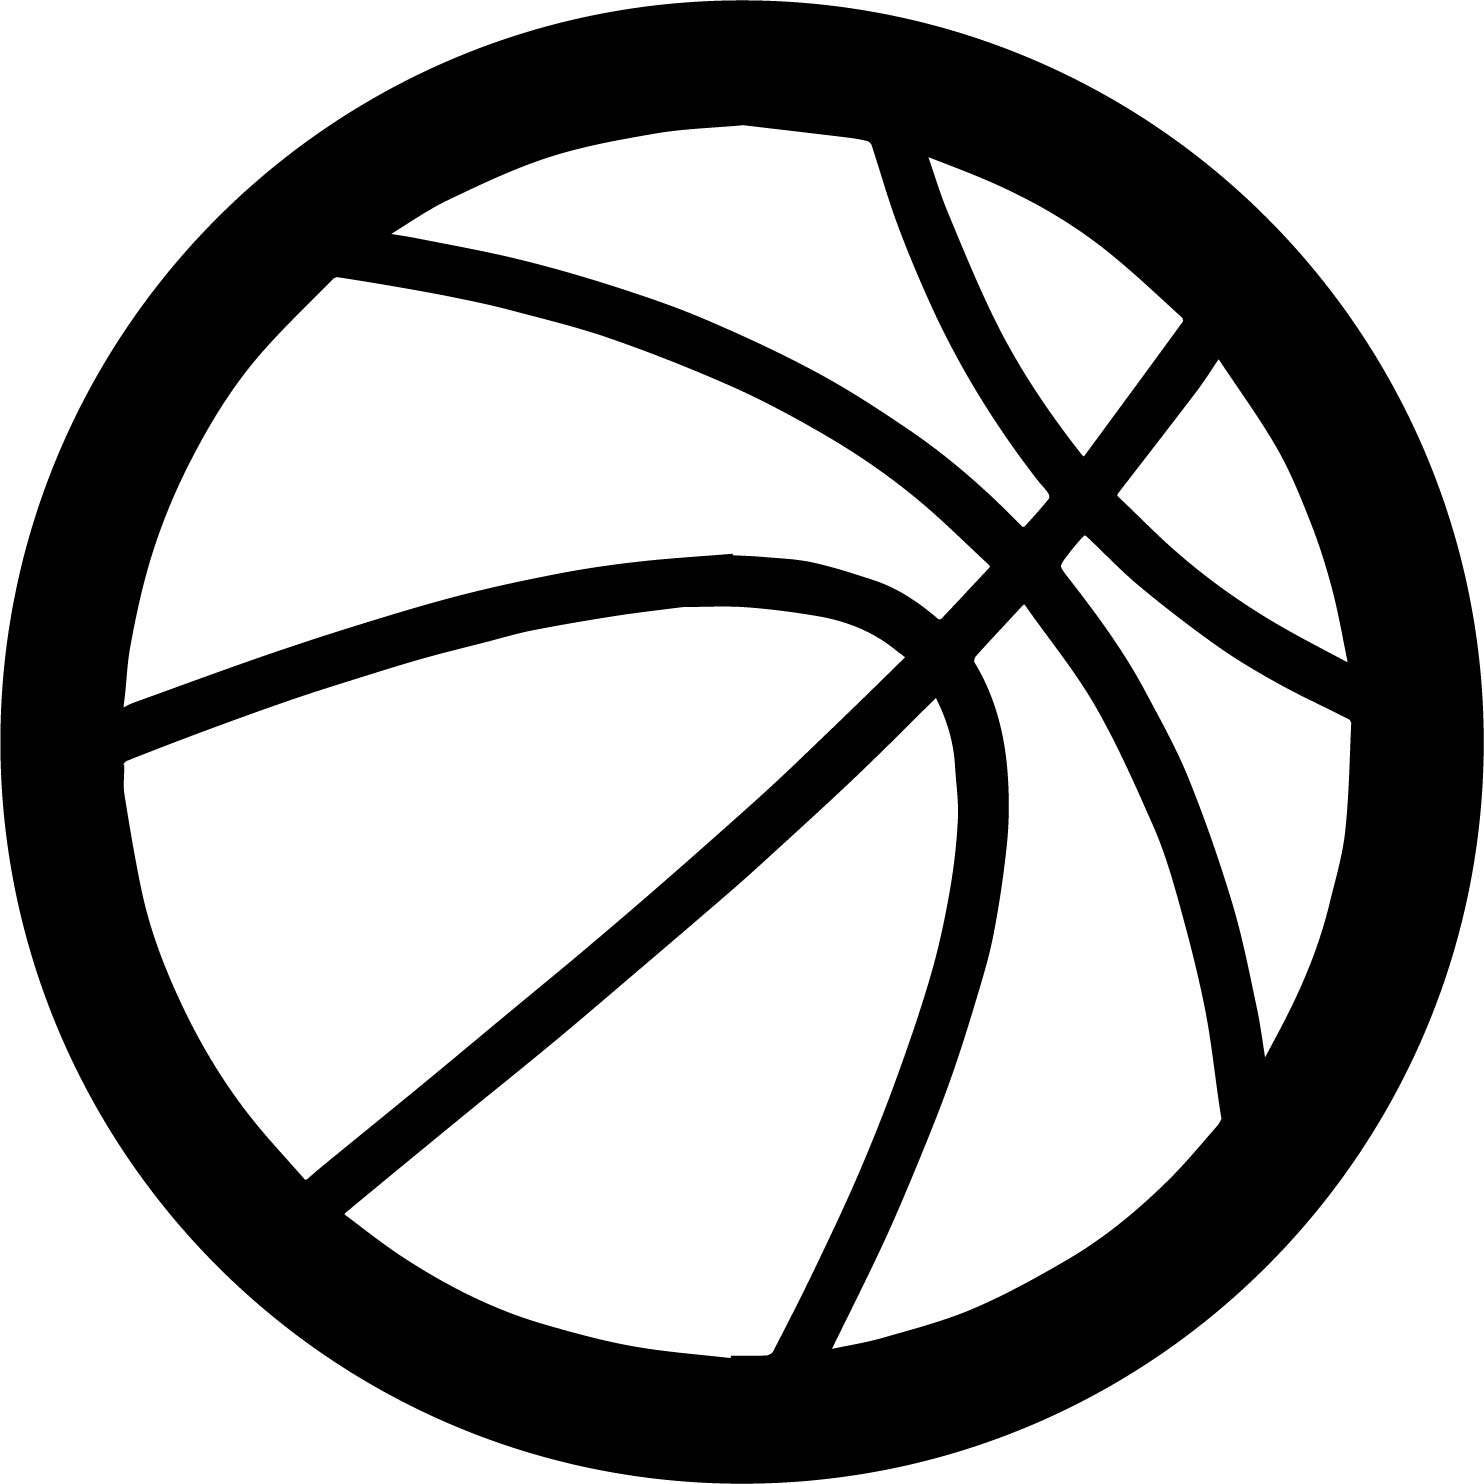 Bold Outline Basketball Ball Coloring Page